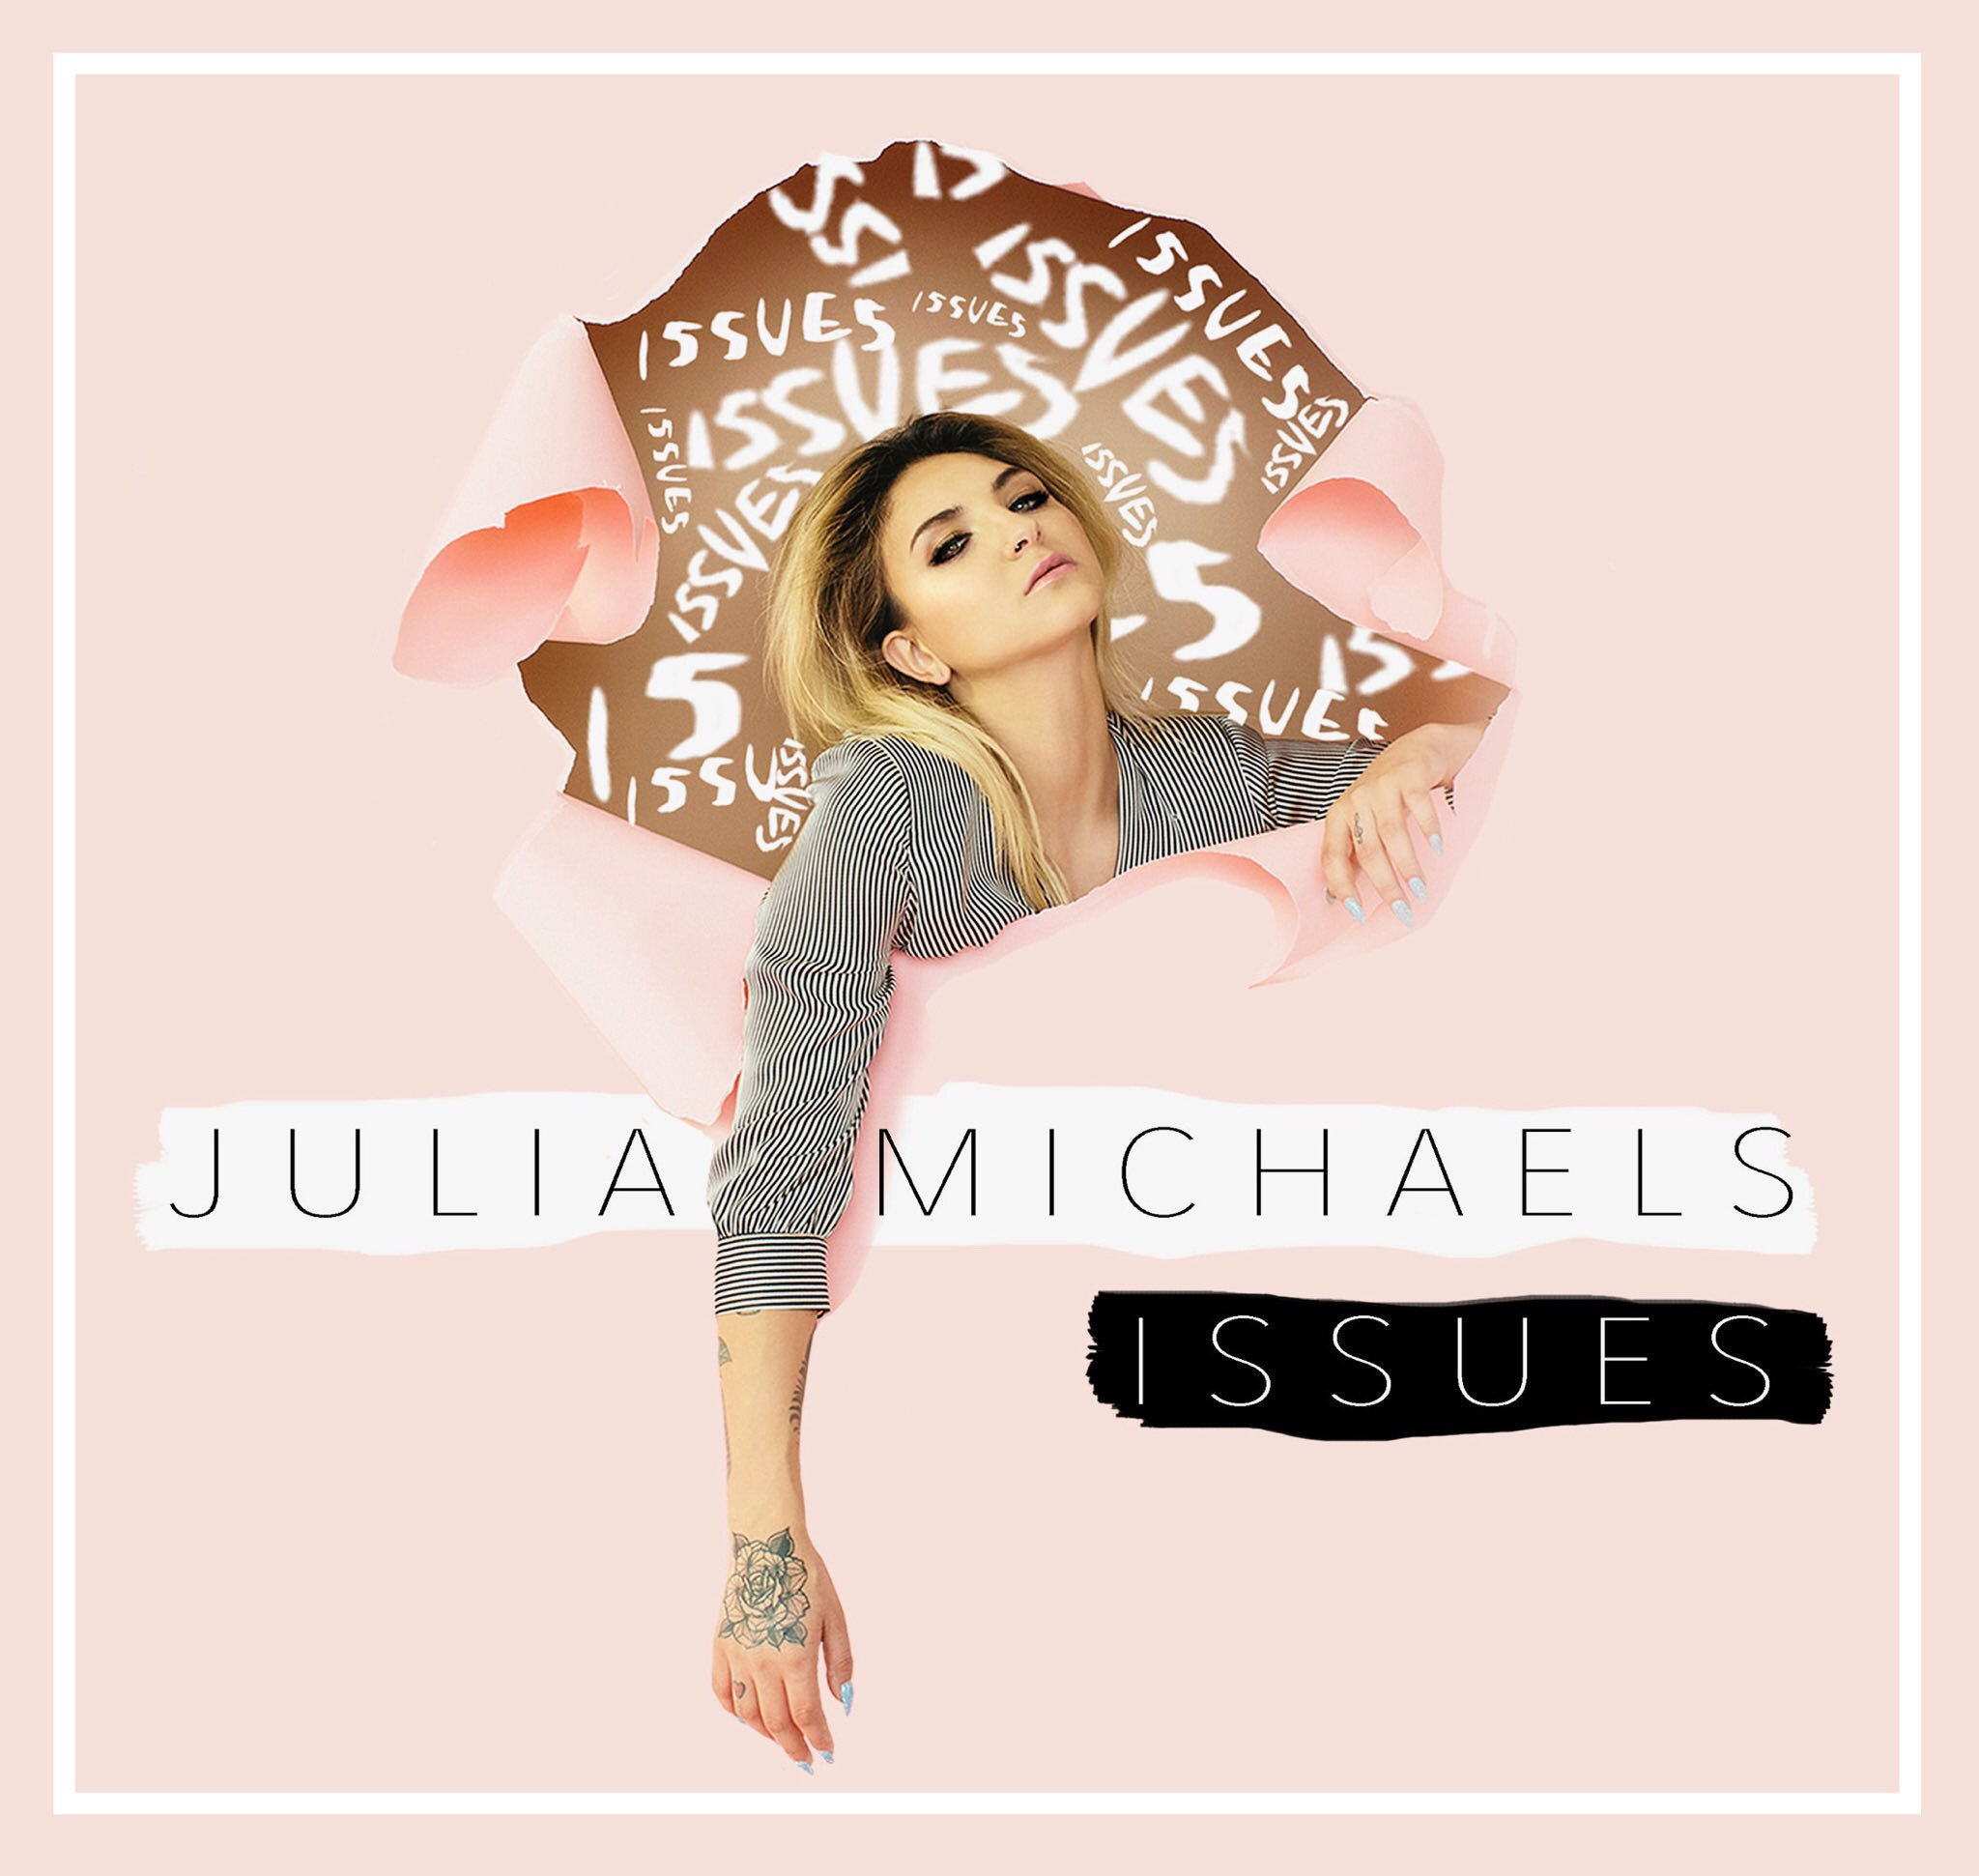 Issues release! (Image: @imjmichaels Twitter)